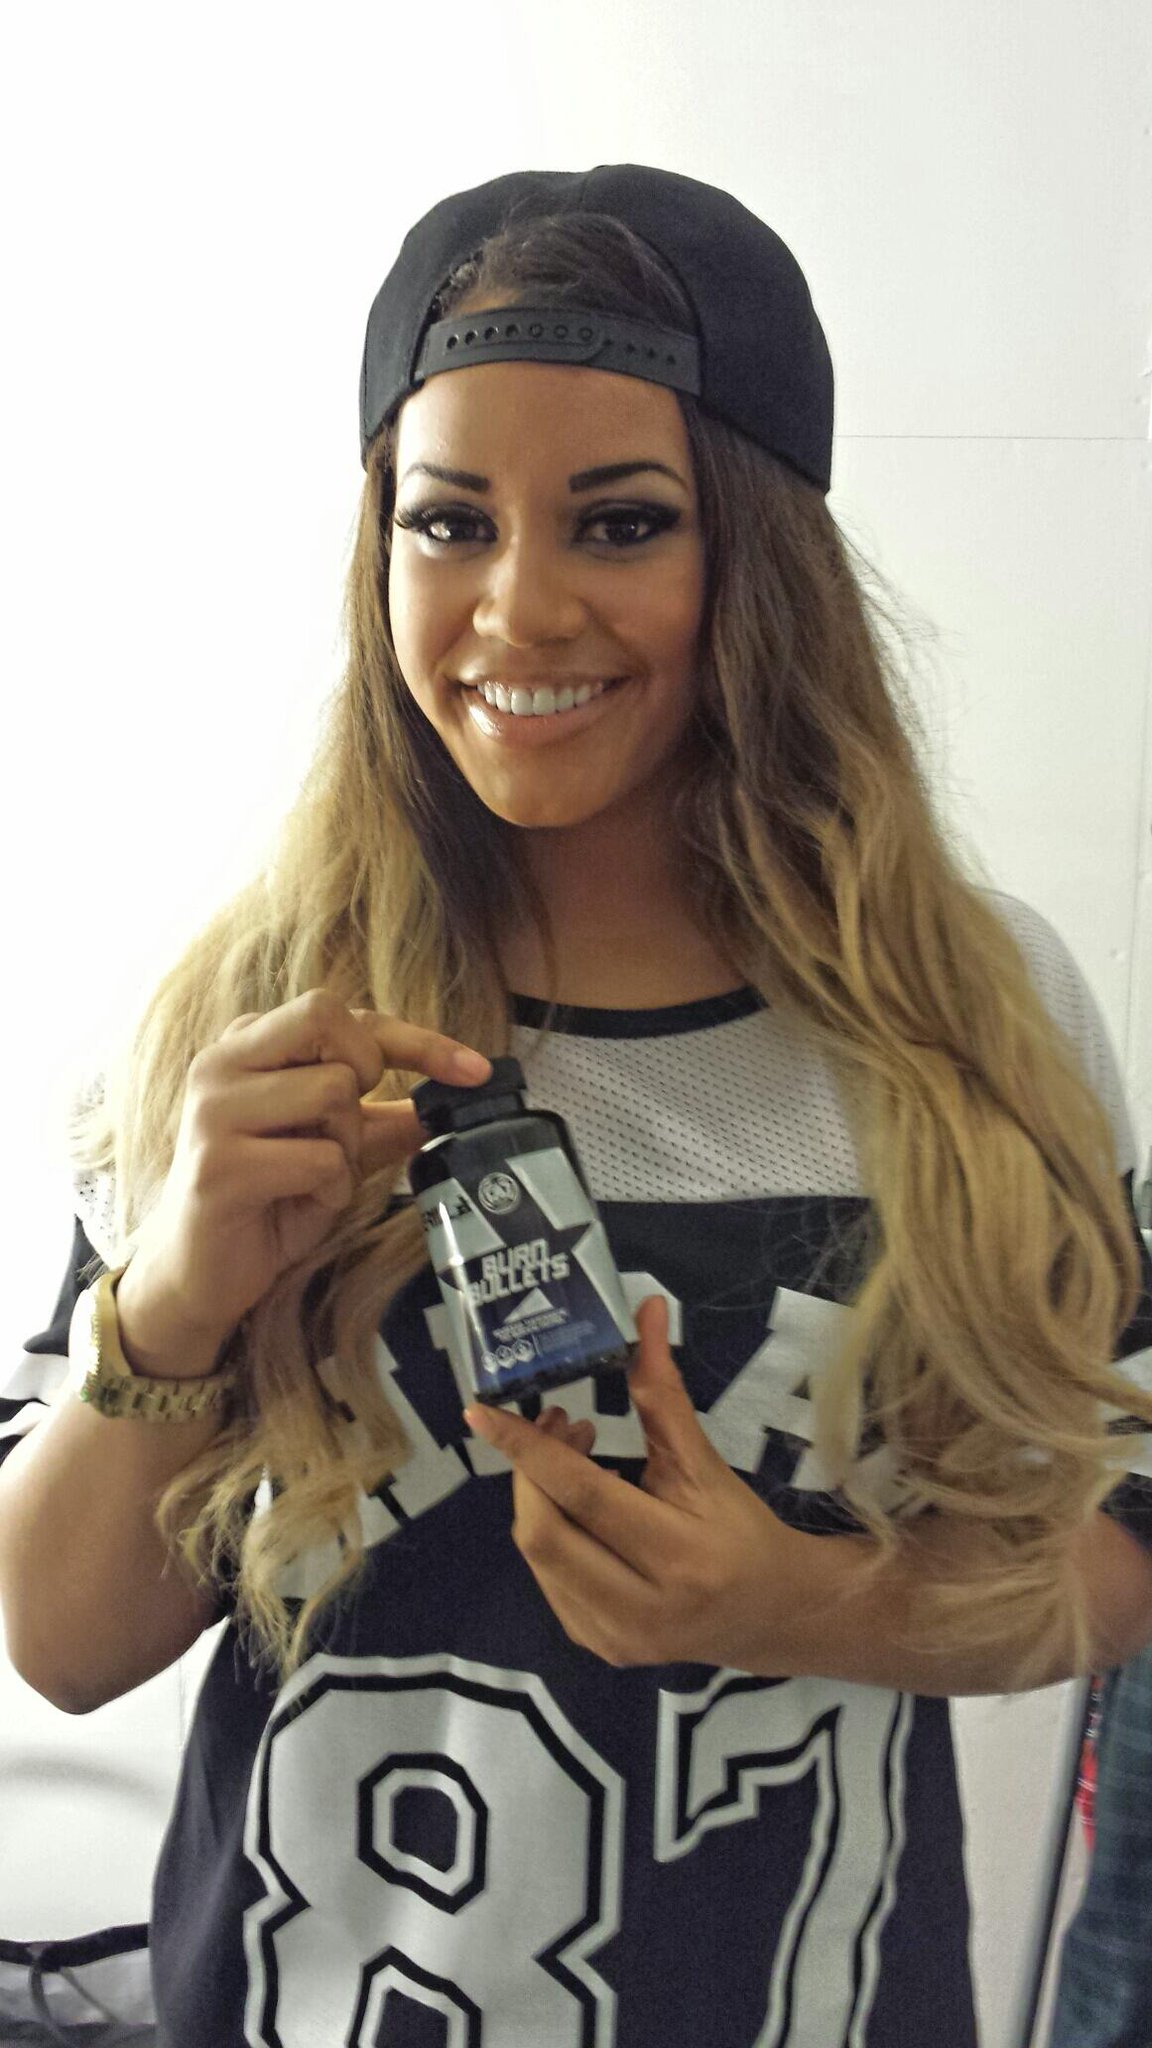 RT @GrillaFitness: Lateysha Grace @LateyshaValleys @Latfrom MTV The Valleys with her #BurnBullets today http://t.co/l5wFF1mtiG